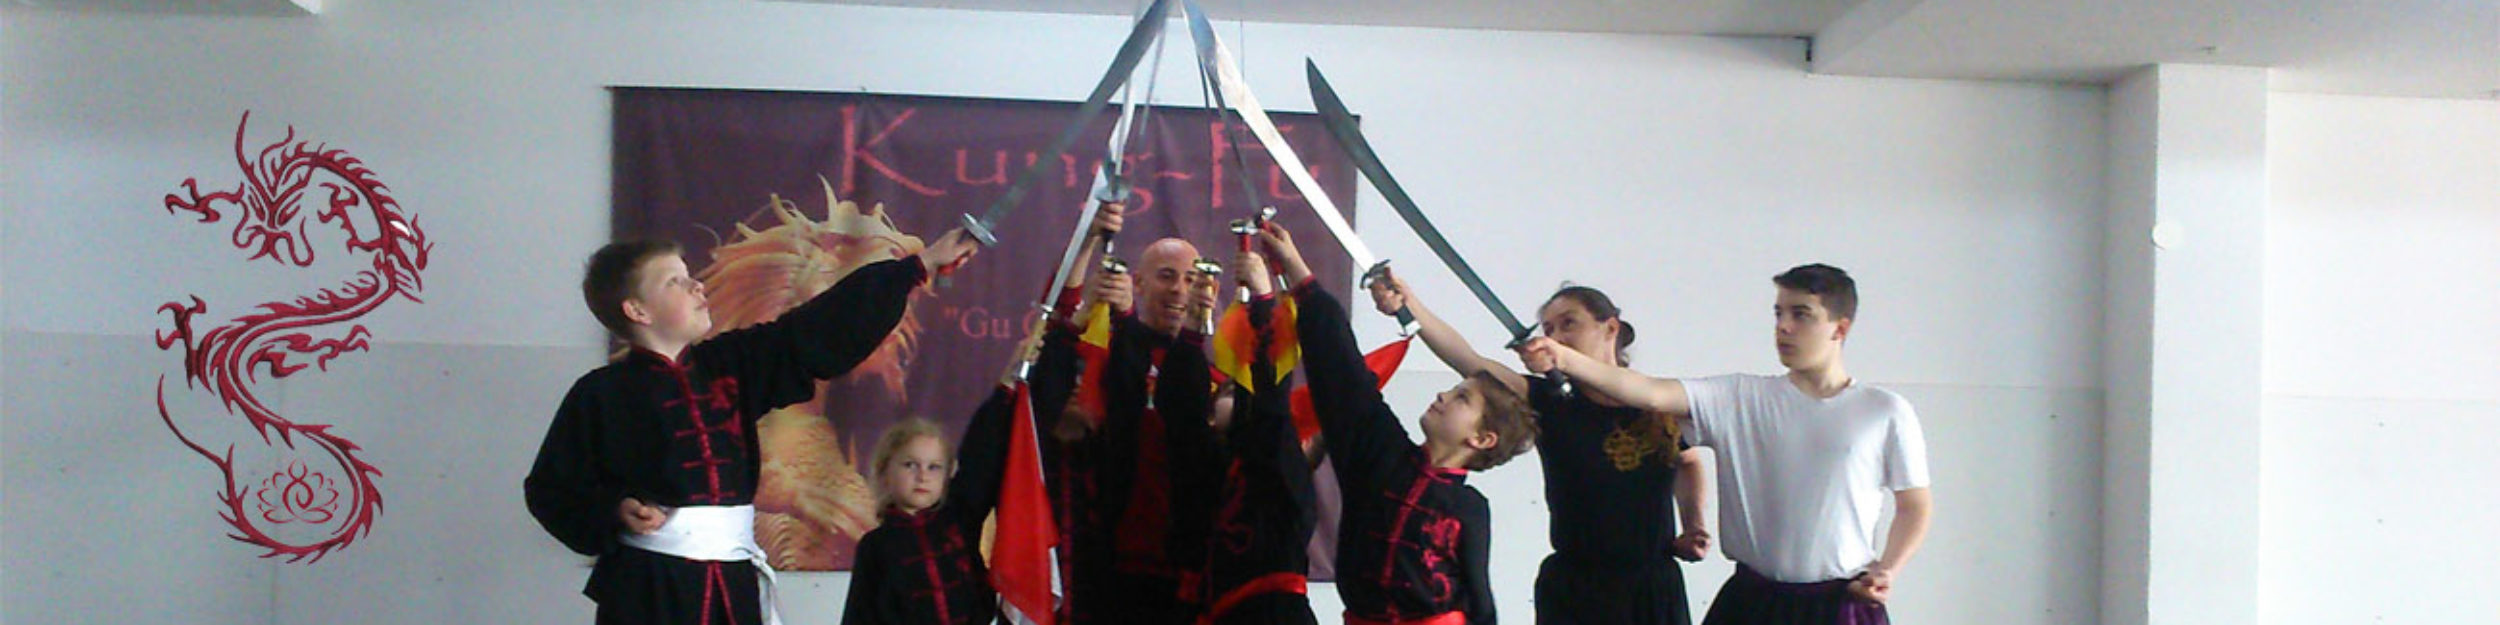 Dragon & Lotus – Kung fu School -Venlo